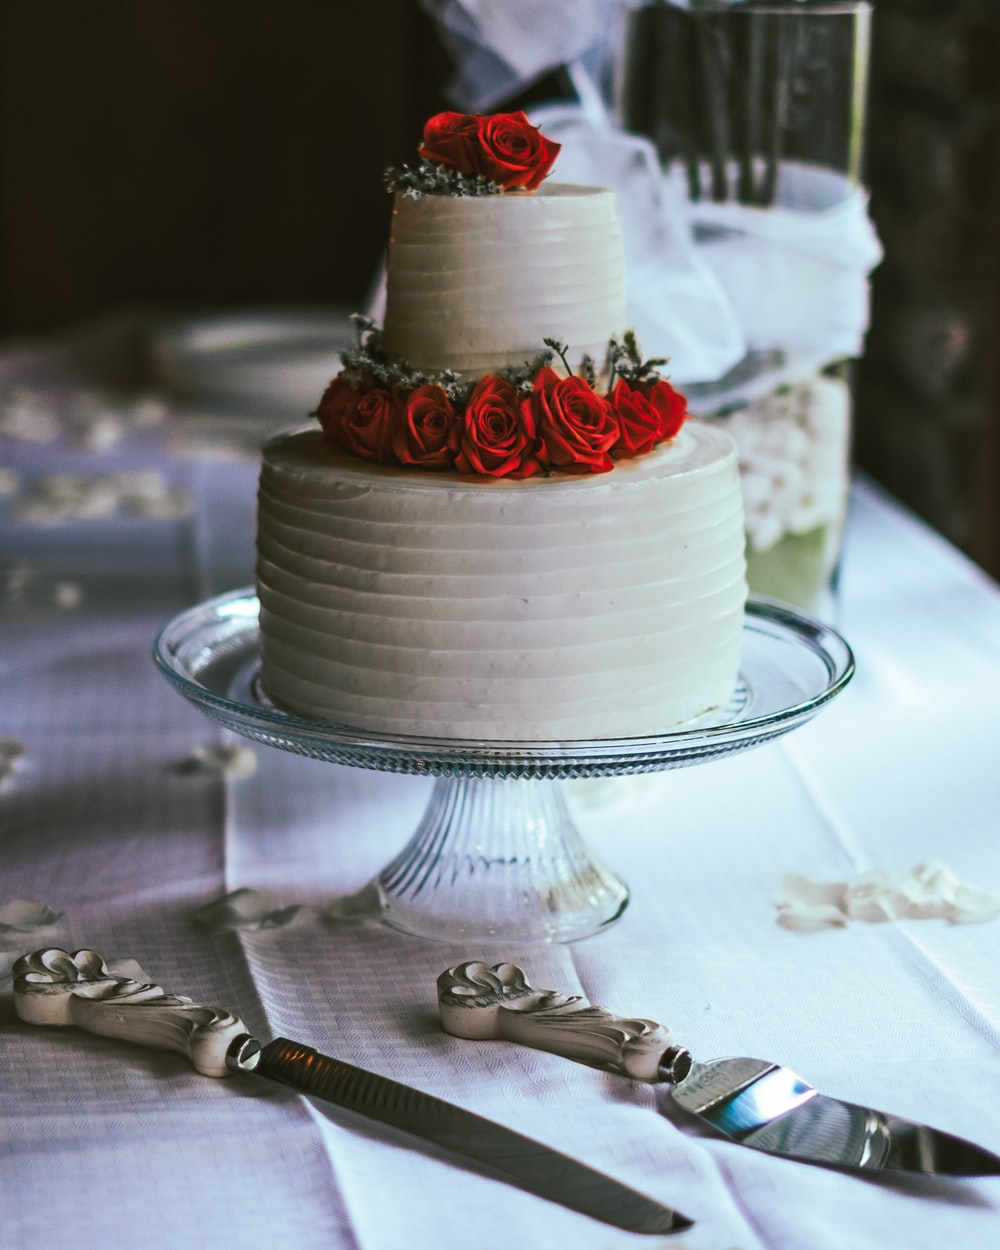 white and red cake on clear glass cake stand